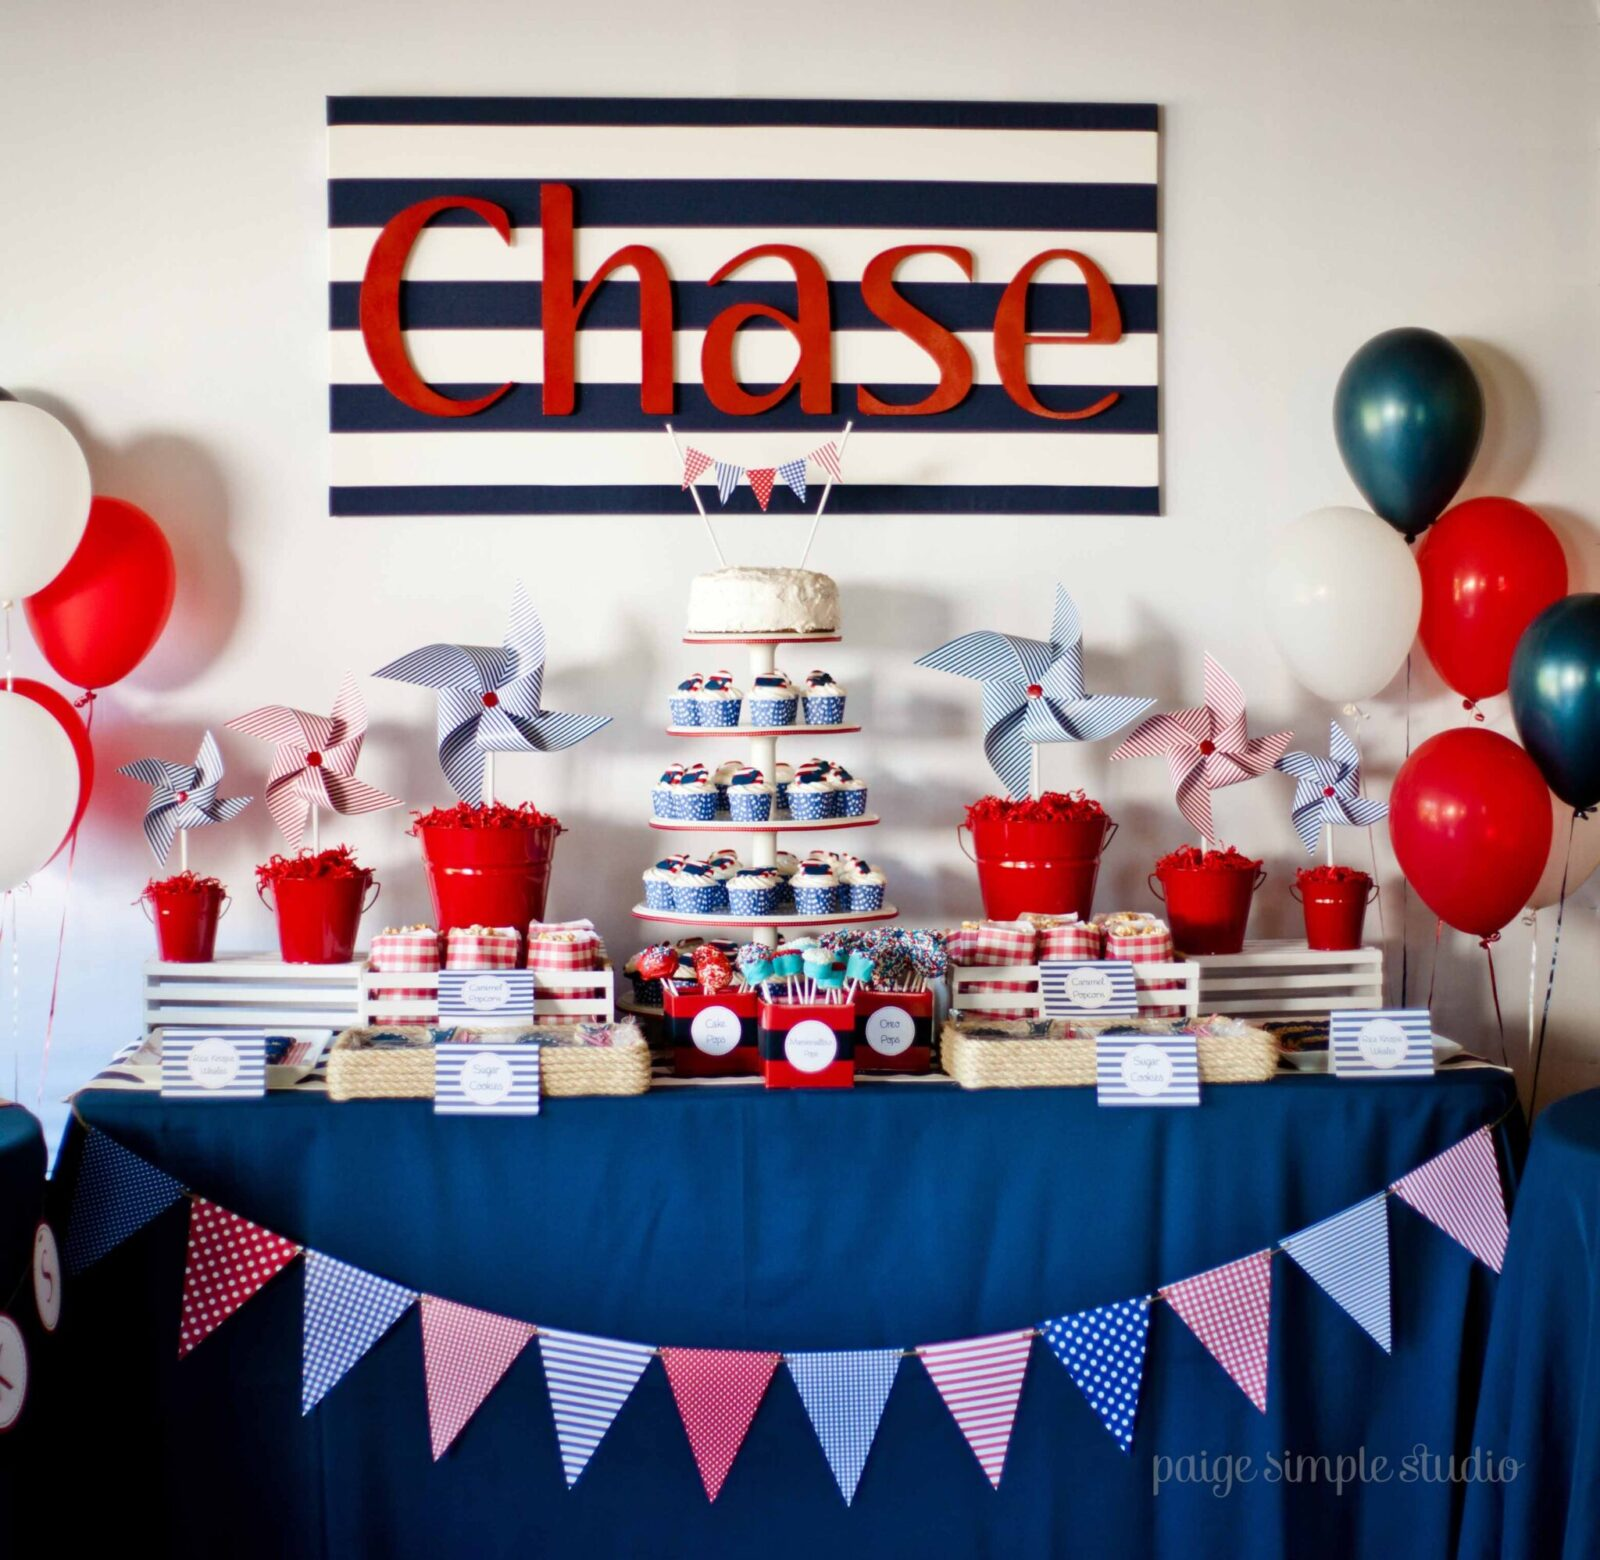 Guest Party: Boy's Nautical First Birthday Party